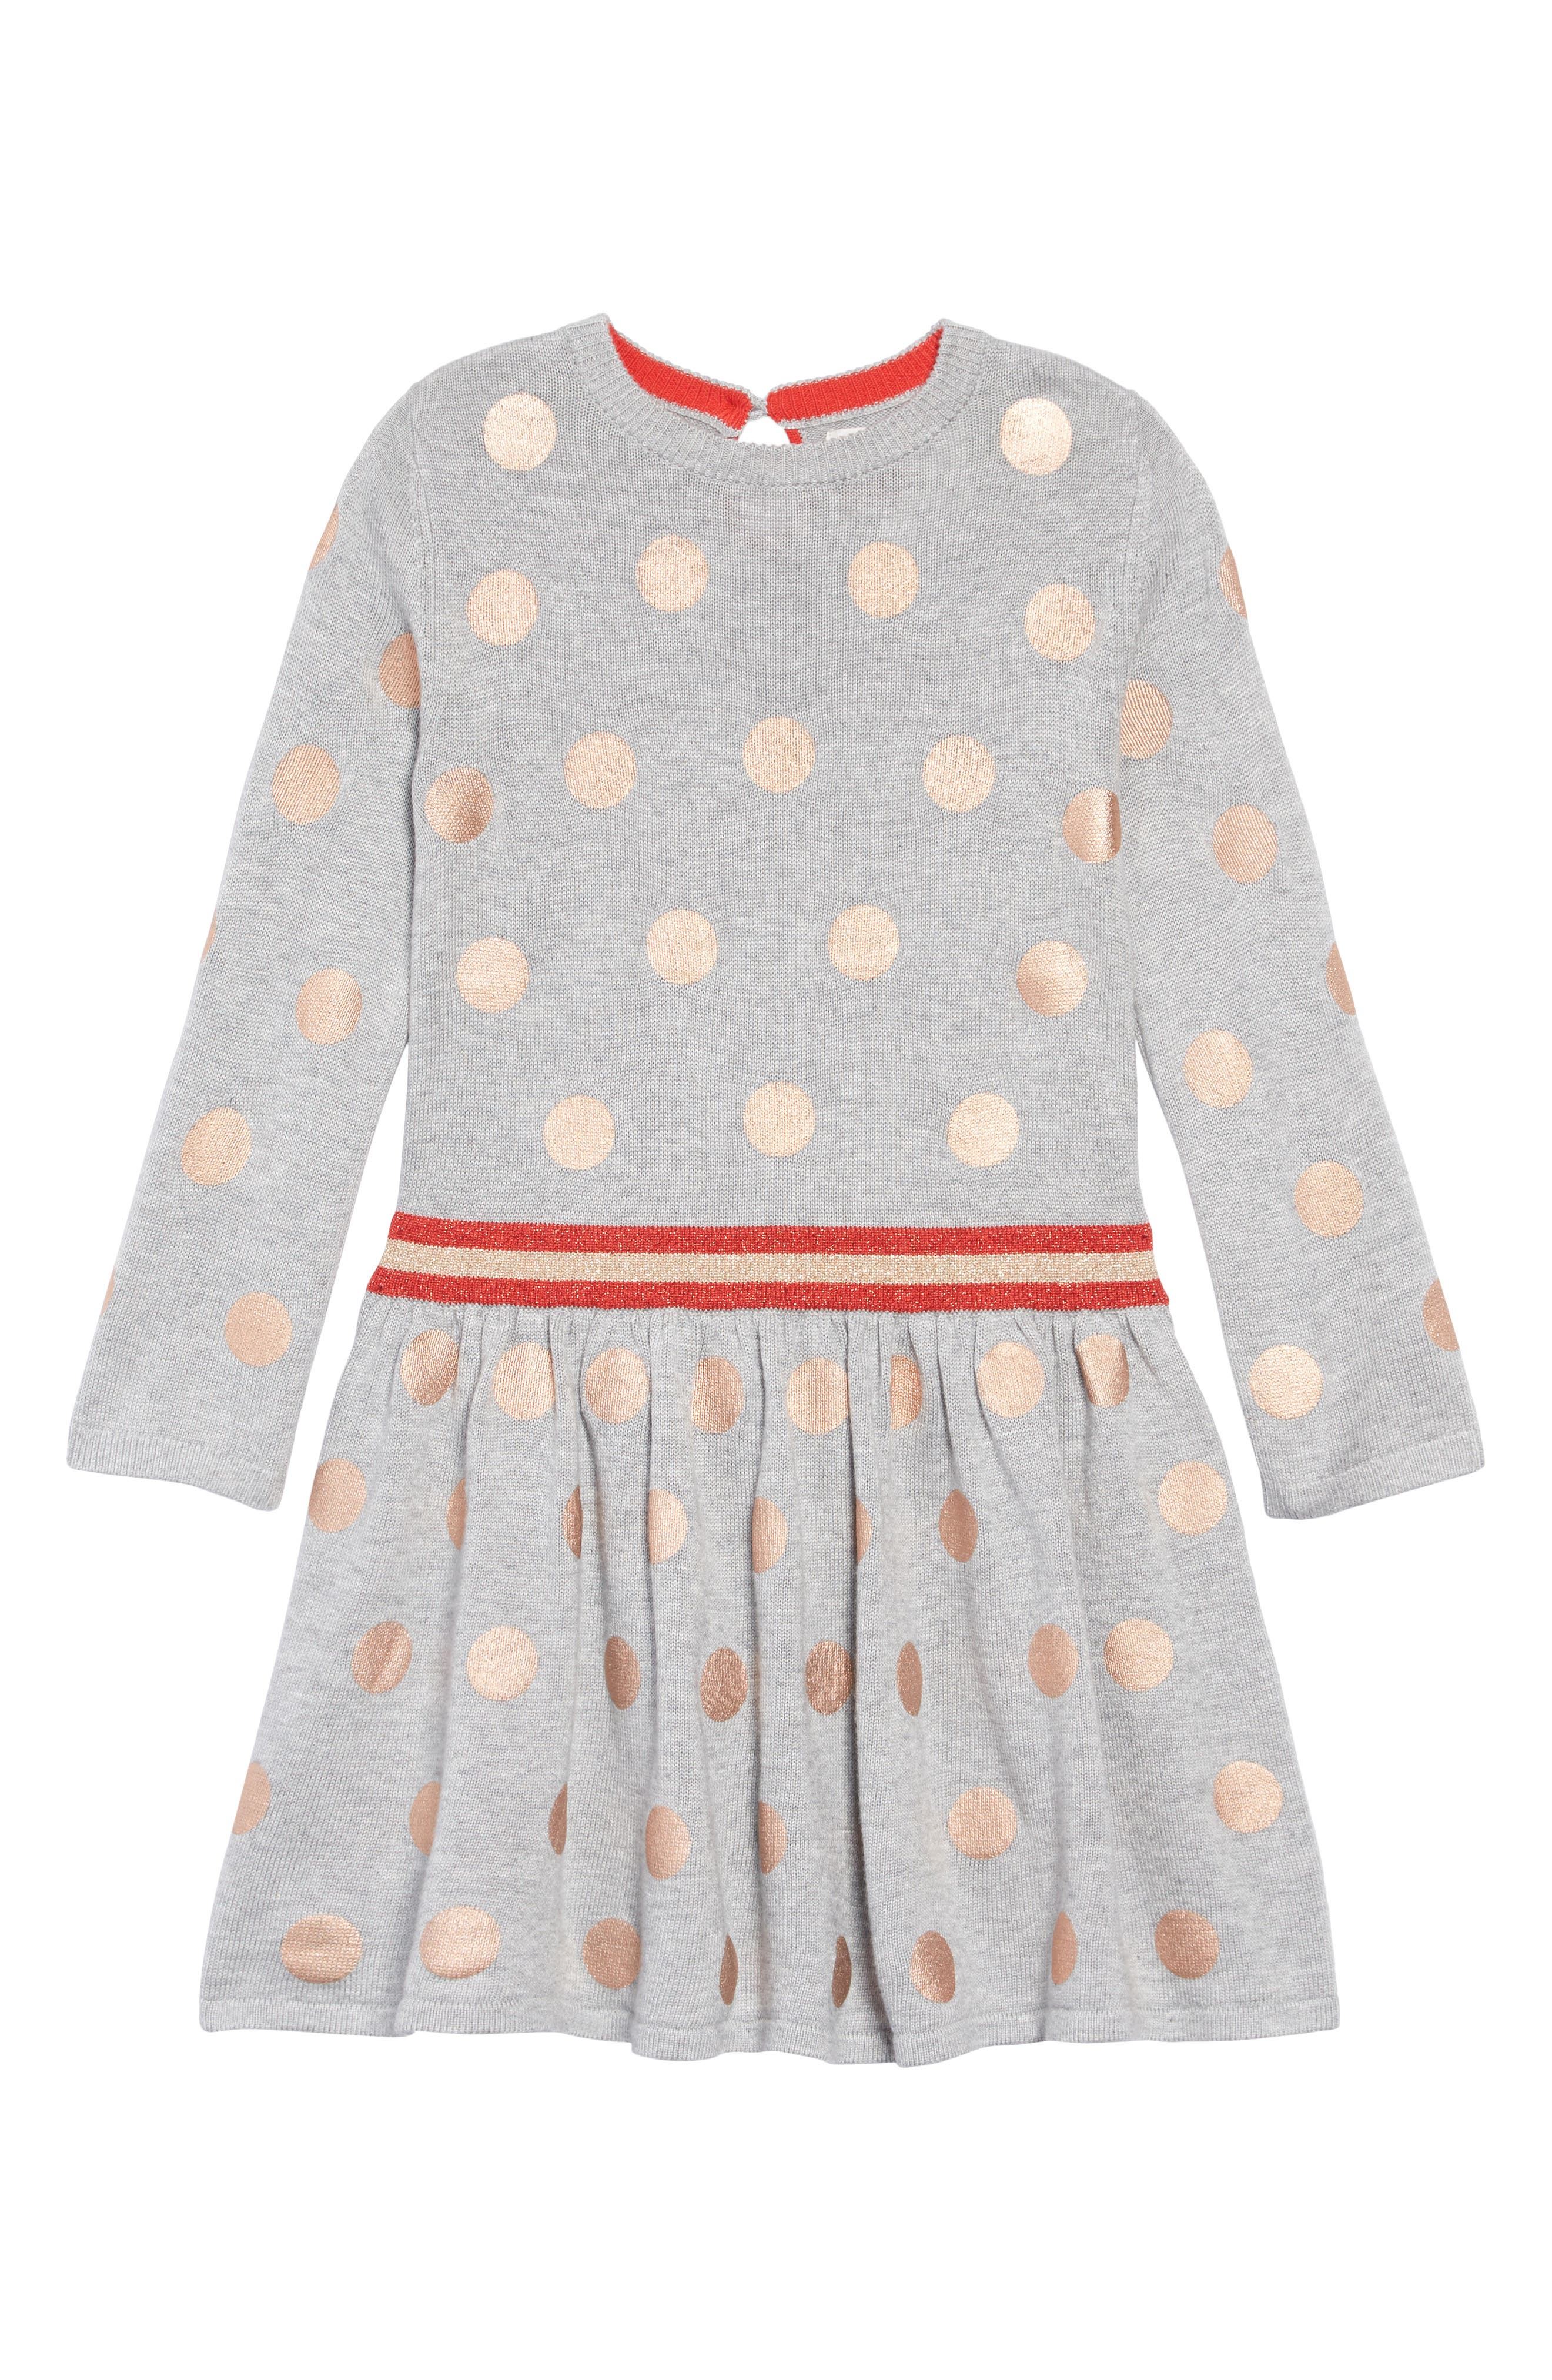 Mini Boden Foil Spot Knit Dress,                             Main thumbnail 1, color,                             GRY GREY MARL FOIL SPOTS